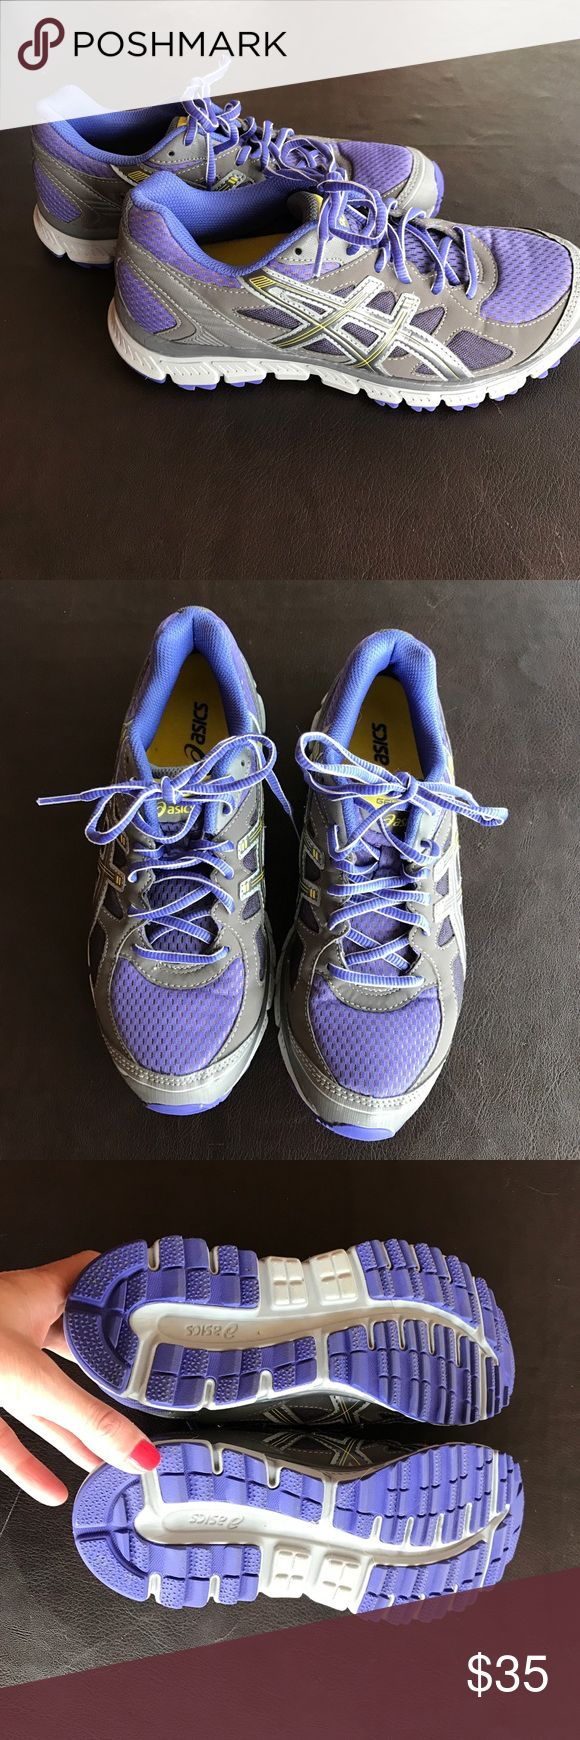 Asics tennis shoes Women's asic tennis shoes gel scram...gently used no tears or stains purple gray and yellow Asics Shoes Athletic Shoes